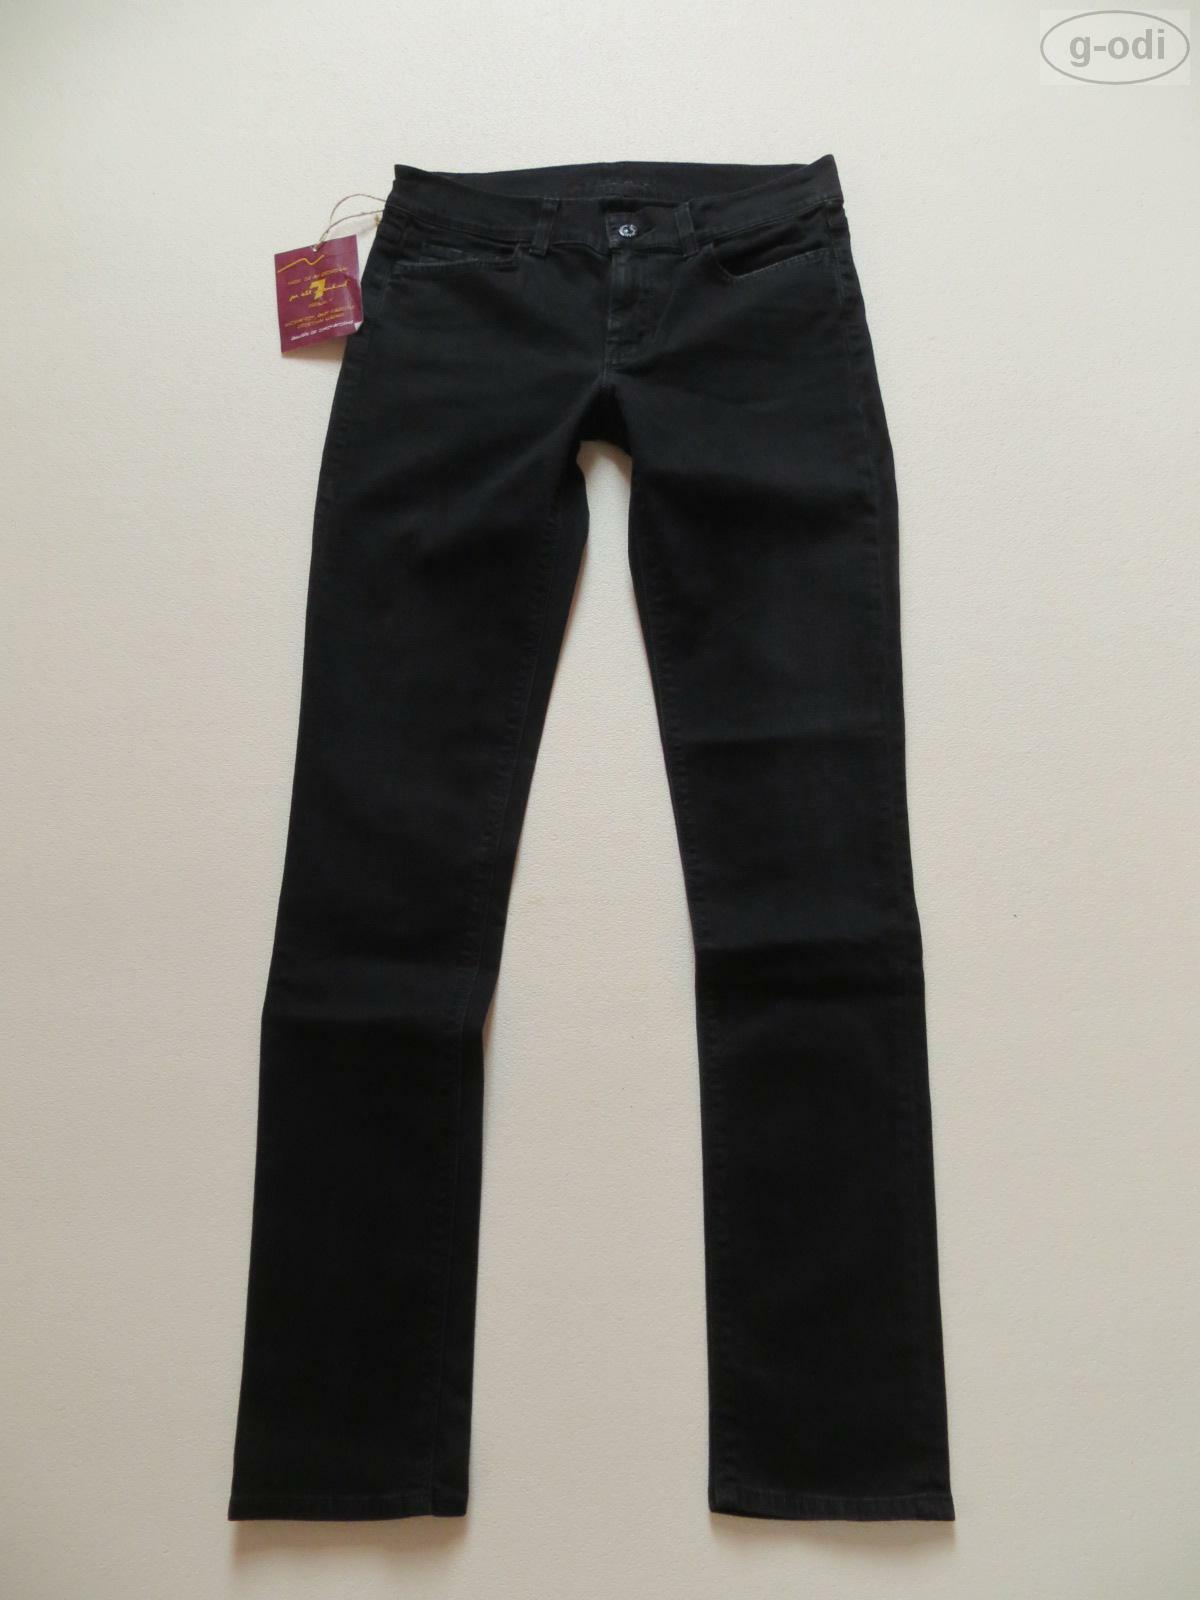 7 For All Mankind Skinny Jeans Hose W 28  L 32 black NEU   Denim MADE IN USA